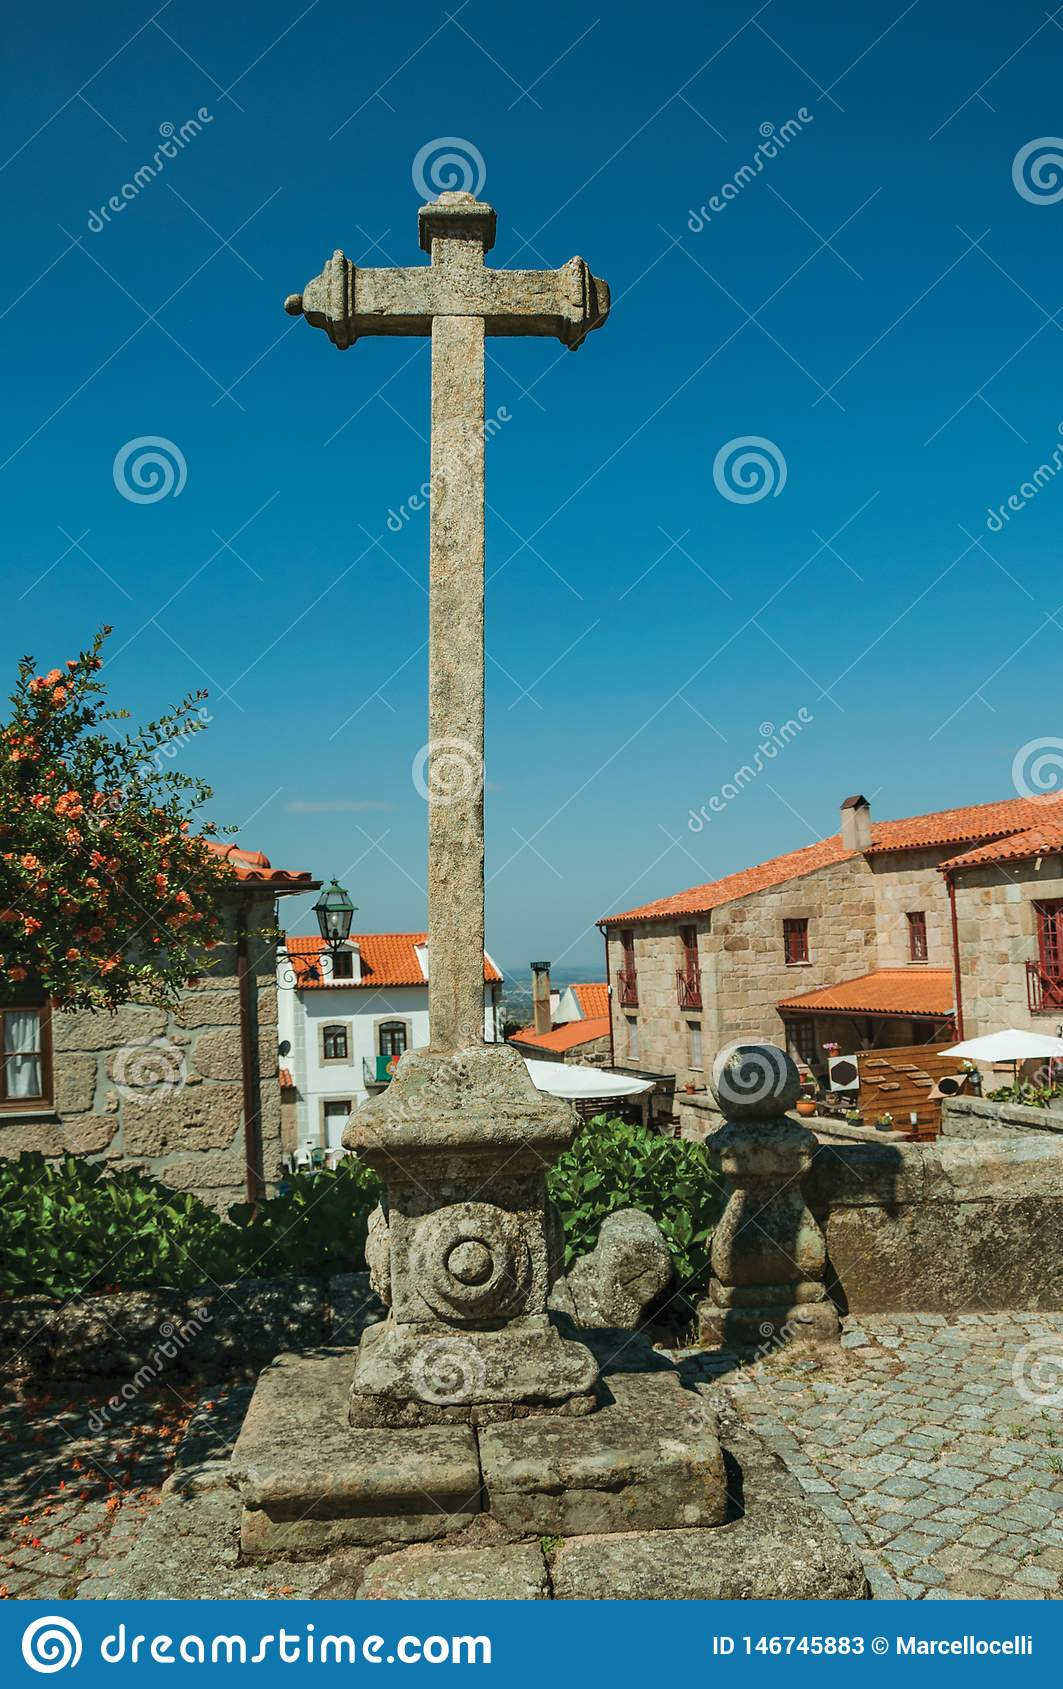 Cross shape pillory made of stone in courtyard and old houses